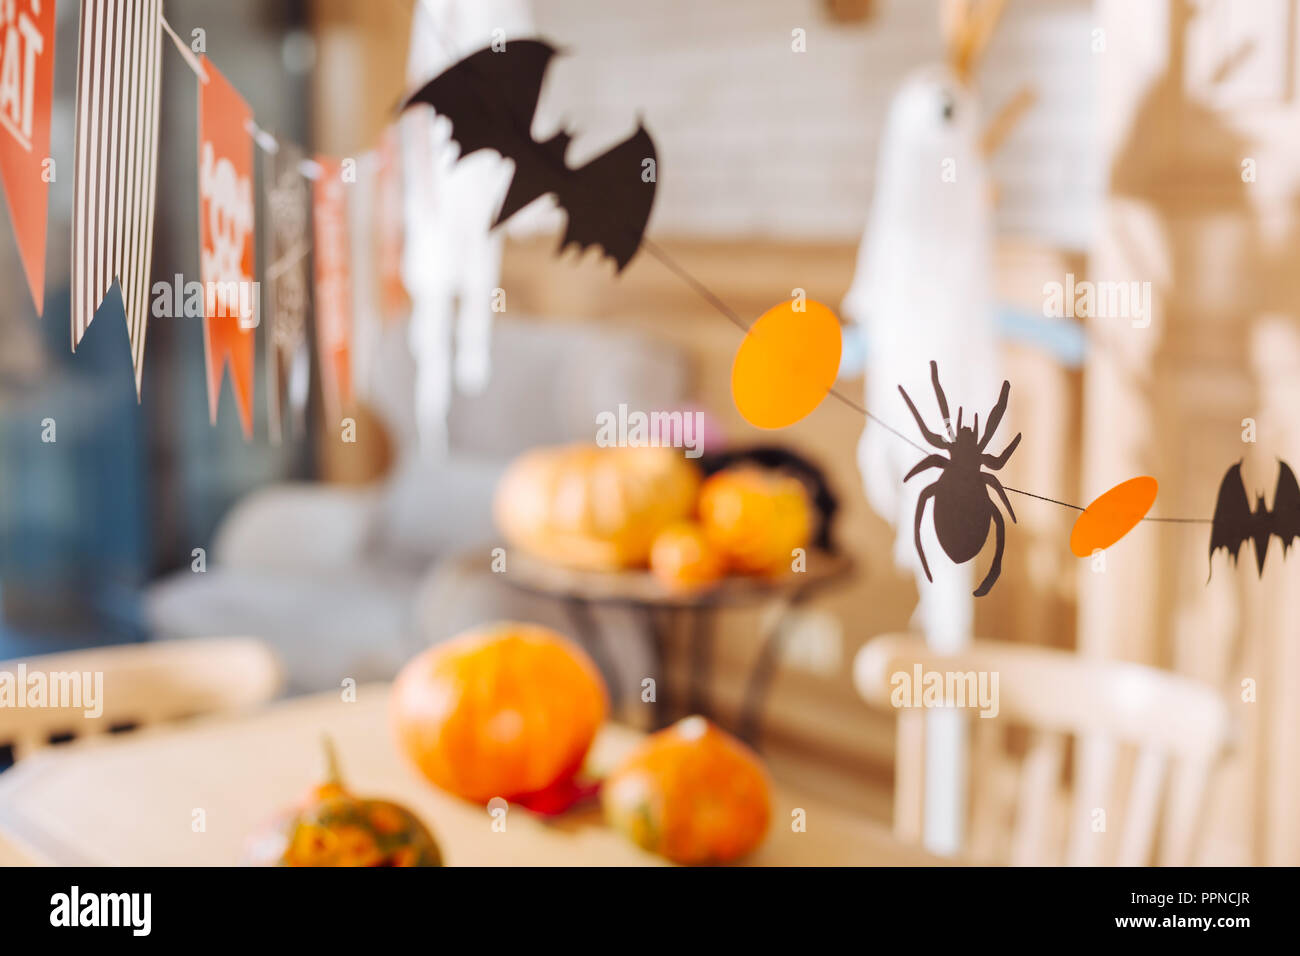 Little bats and spiders made out of paper used as decorations for